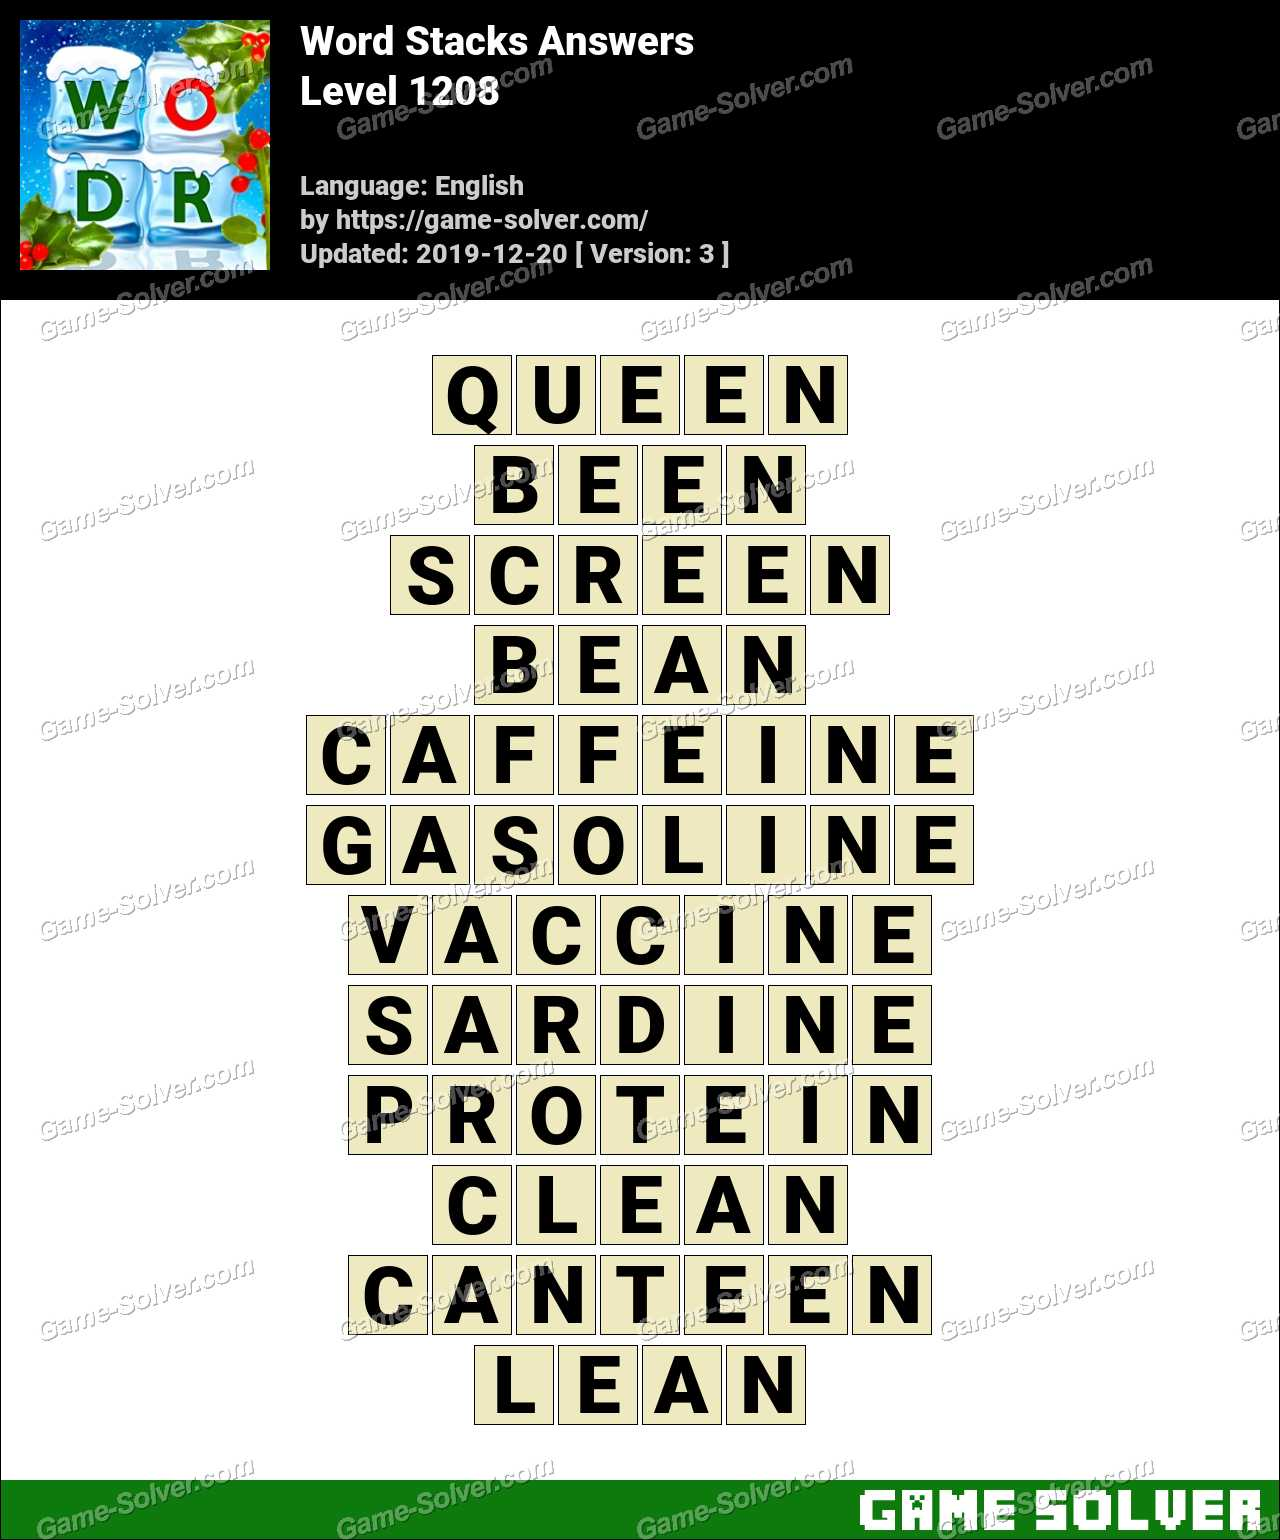 Word Stacks Level 1208 Answers